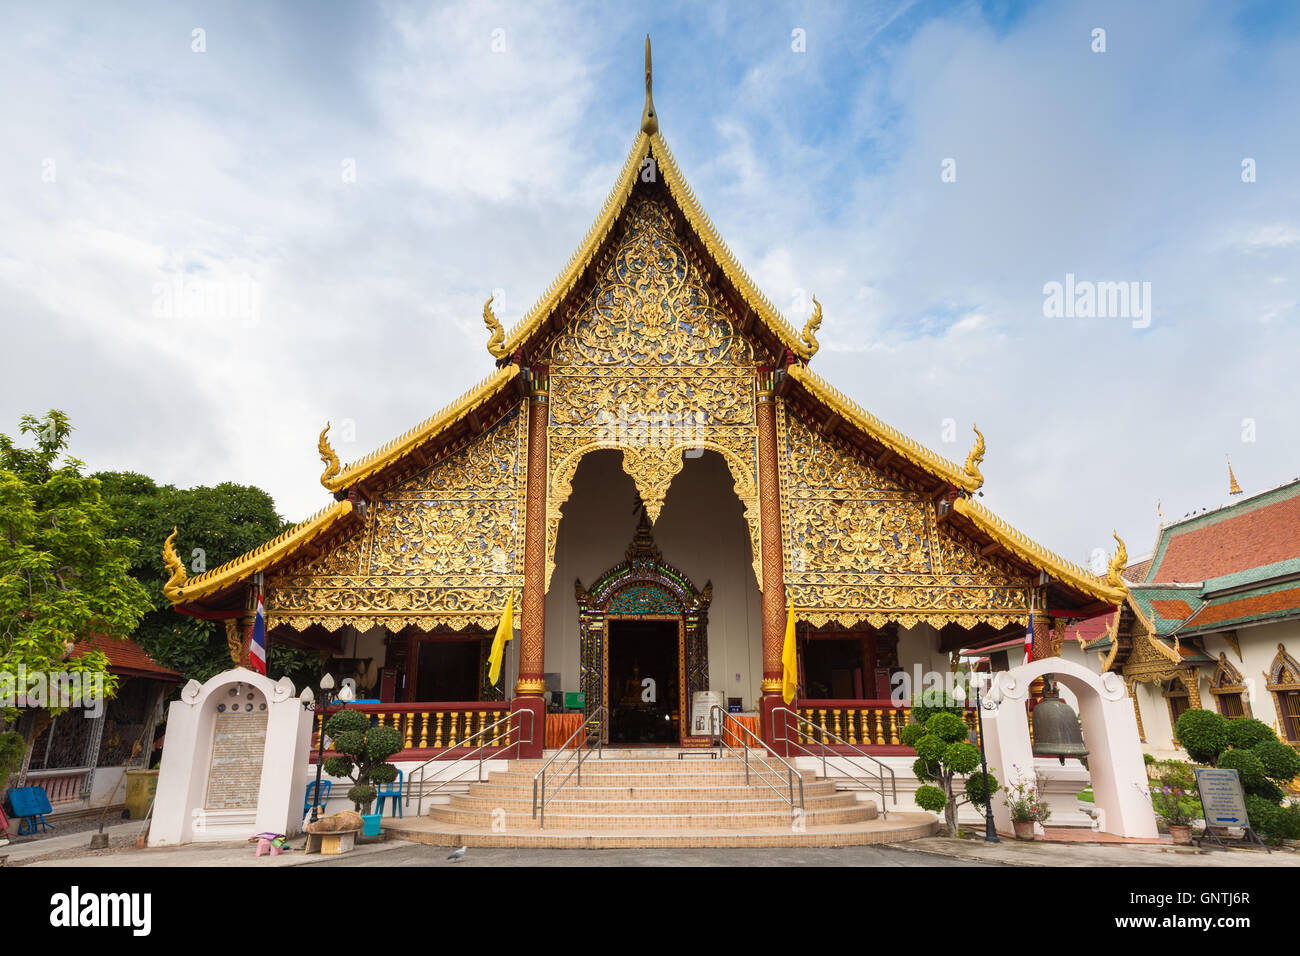 Wat Chiang Man, the oldest temple in Chiang Mai, Thailand - Stock Image